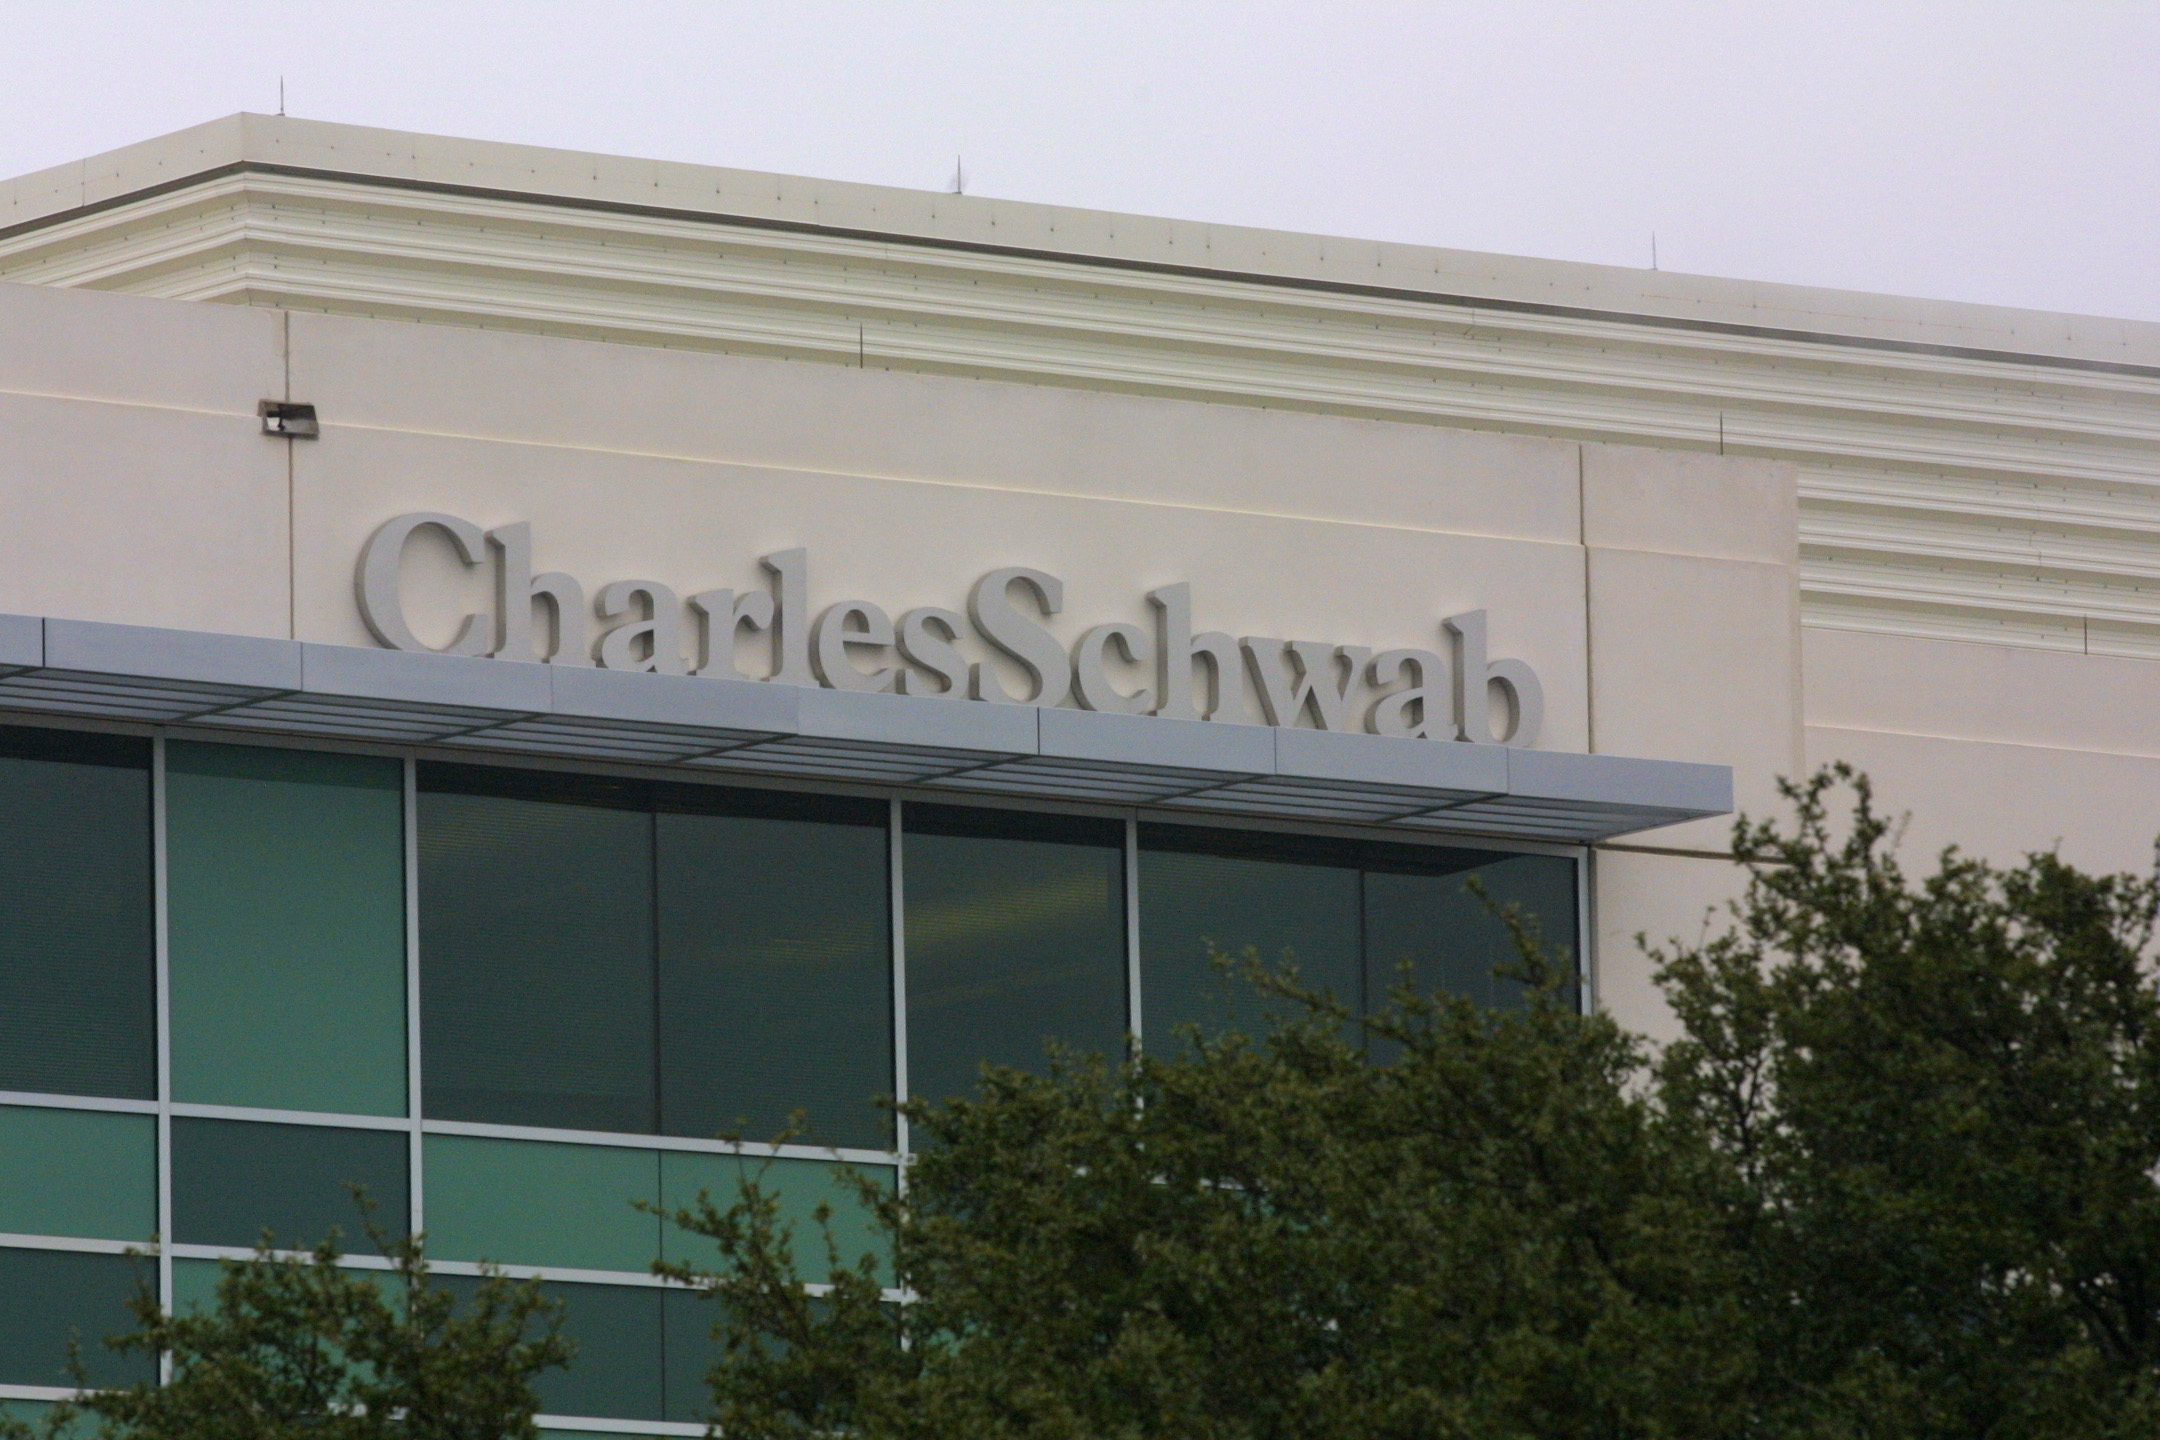 A Charles Schwab sign hangs on the side of the building January 12, 2001 in Austin, Texas. (Credit: Joe Raedle/Newsmakers via Getty Images)